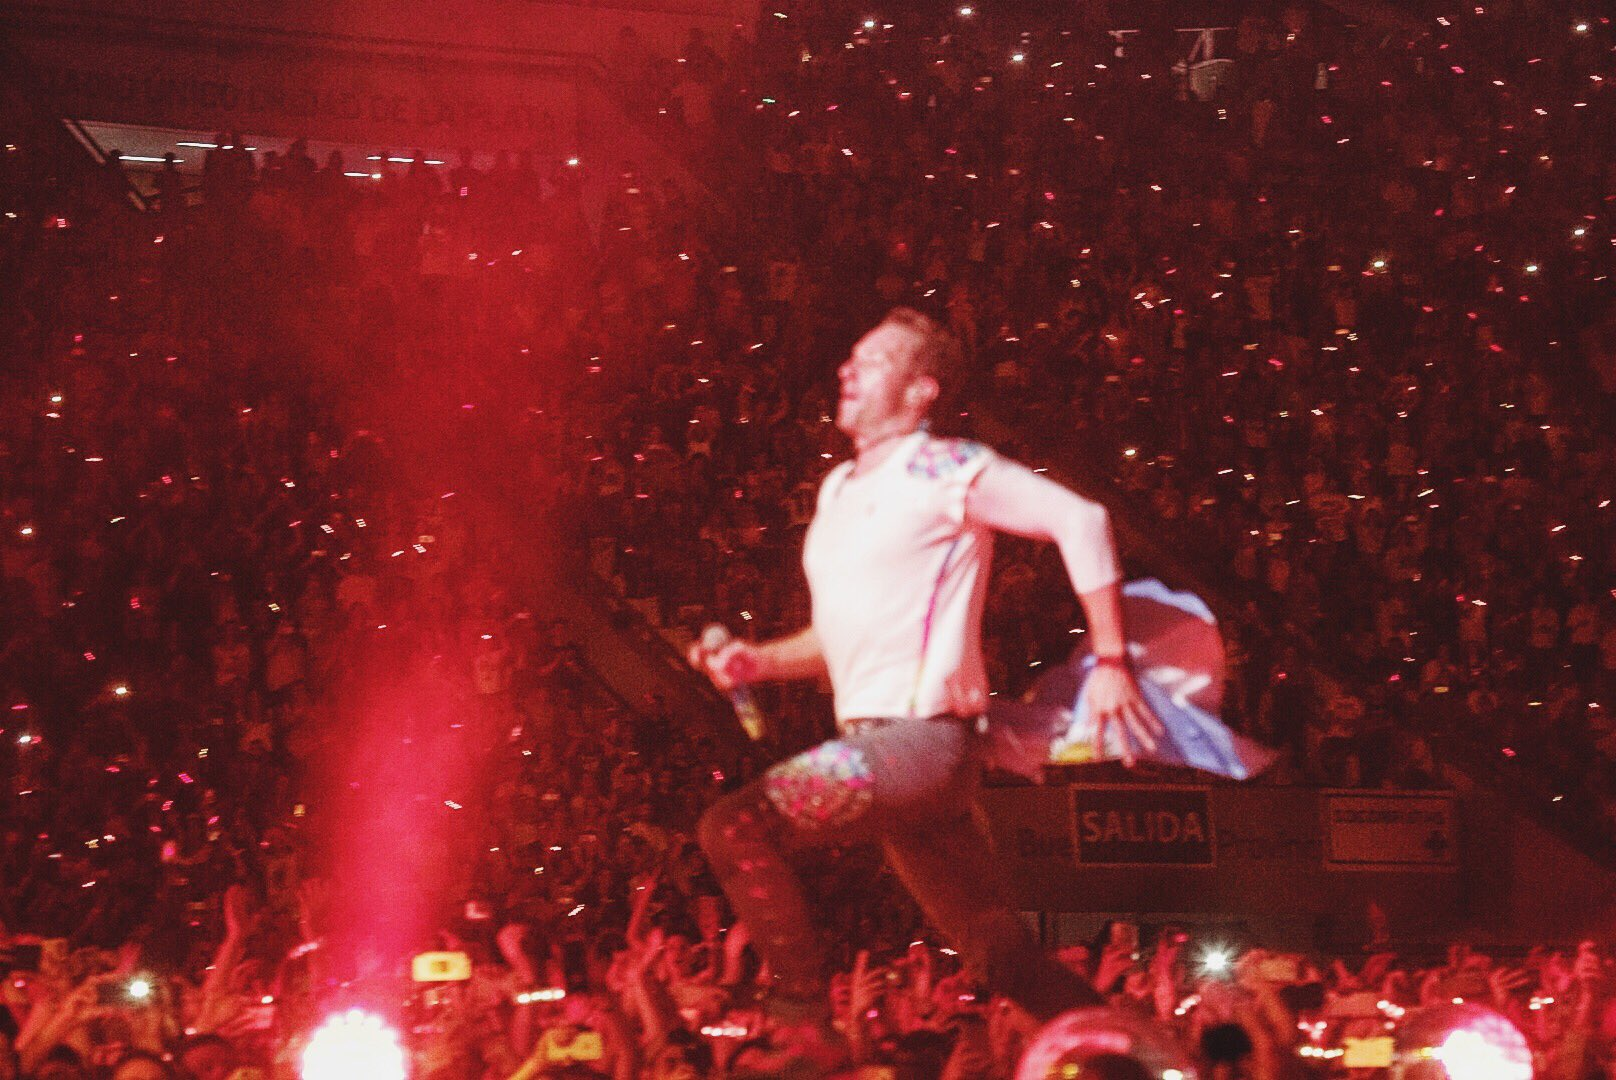 Fix You. R42 #ColdplayBuenosAires https://t.co/3lCMrO54qF